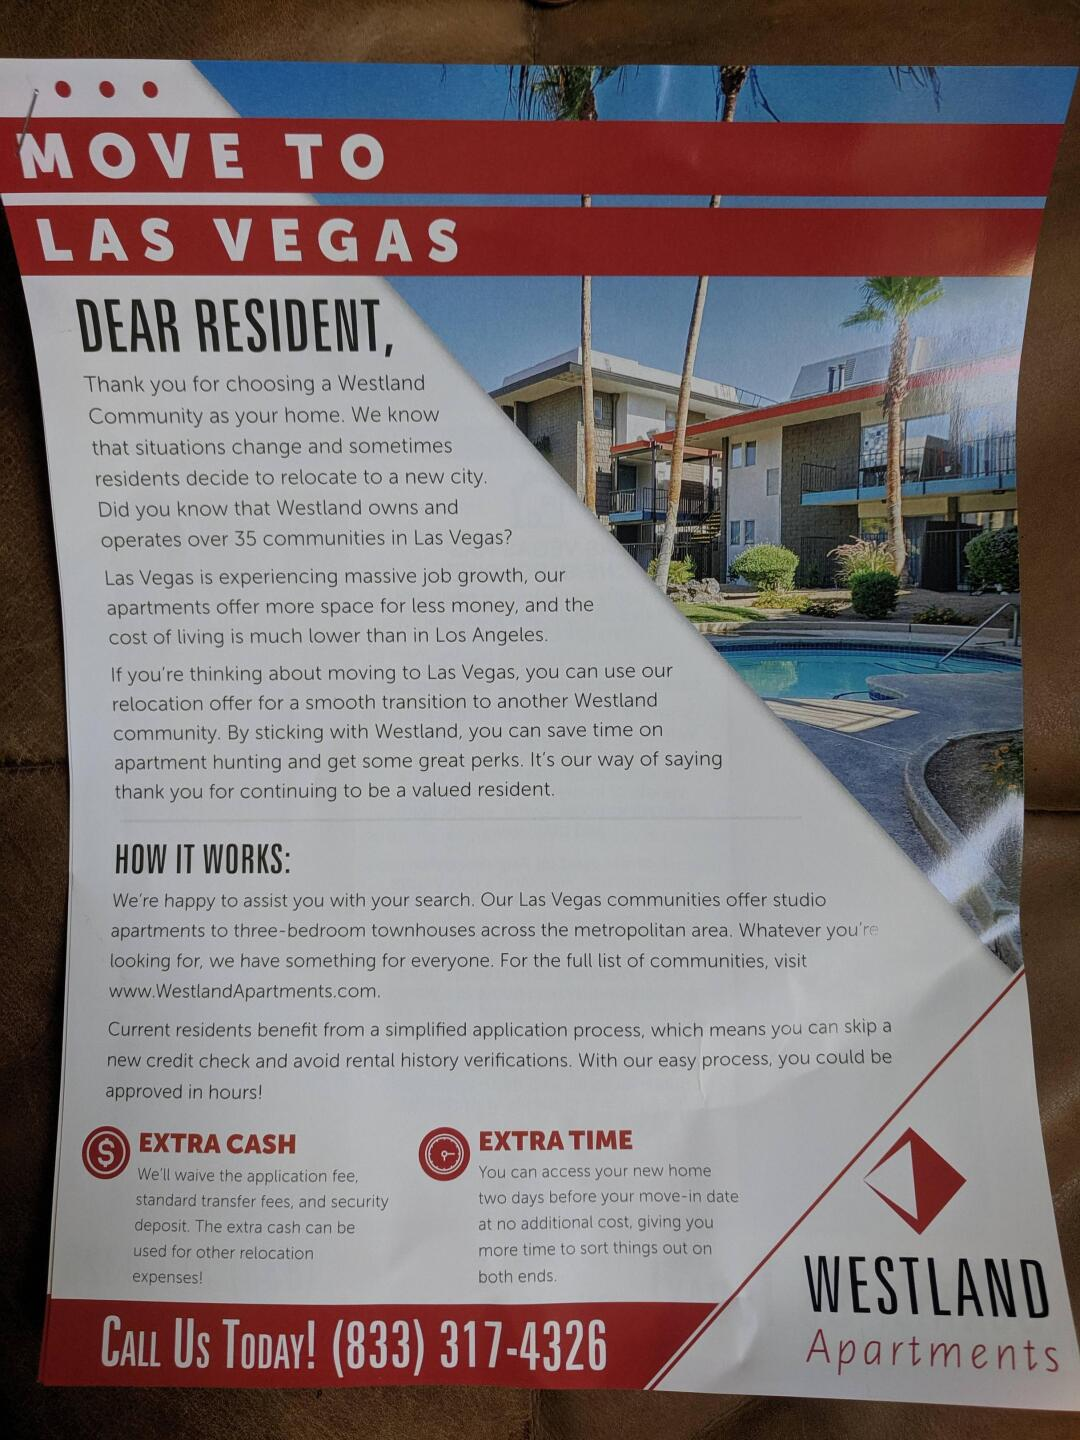 reddit move to vegas flyer credit Jantzn May.jpg